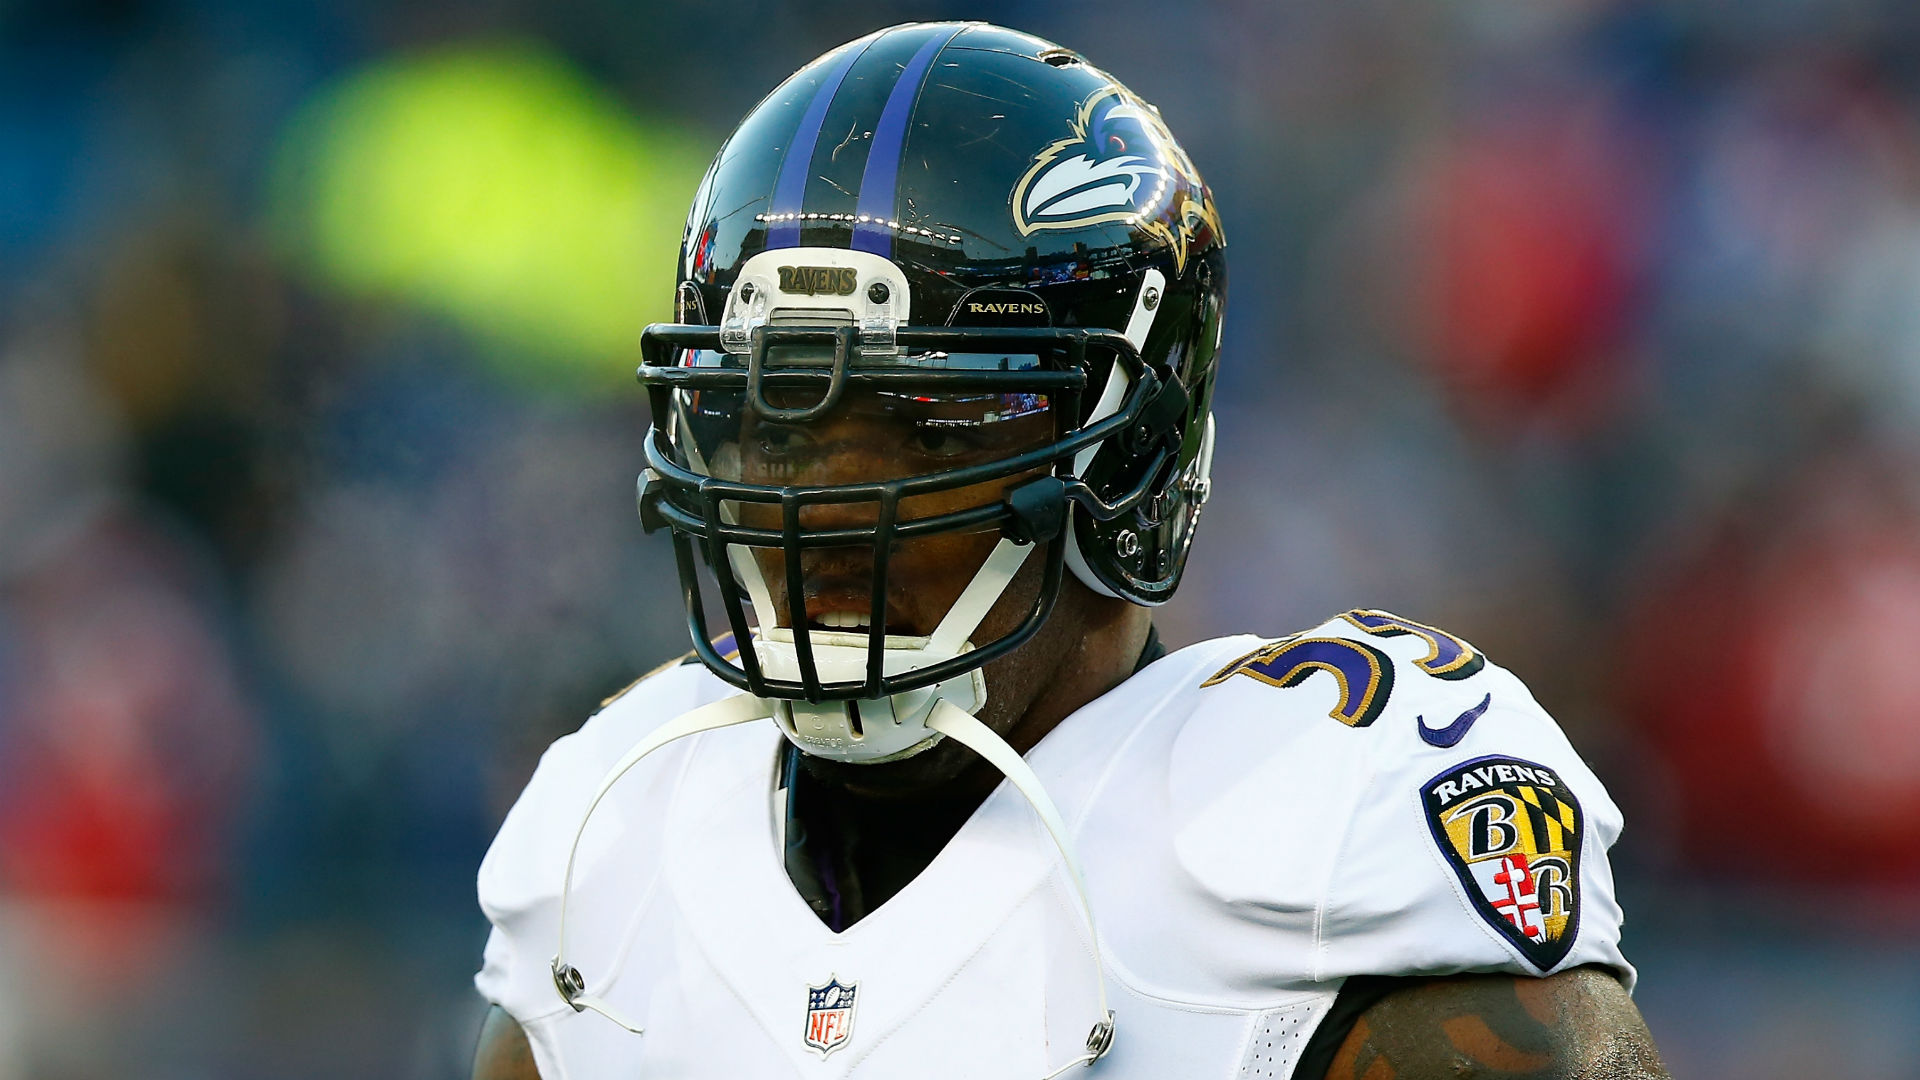 Ravens linebacker Terrell Suggs suffers torn biceps reports say